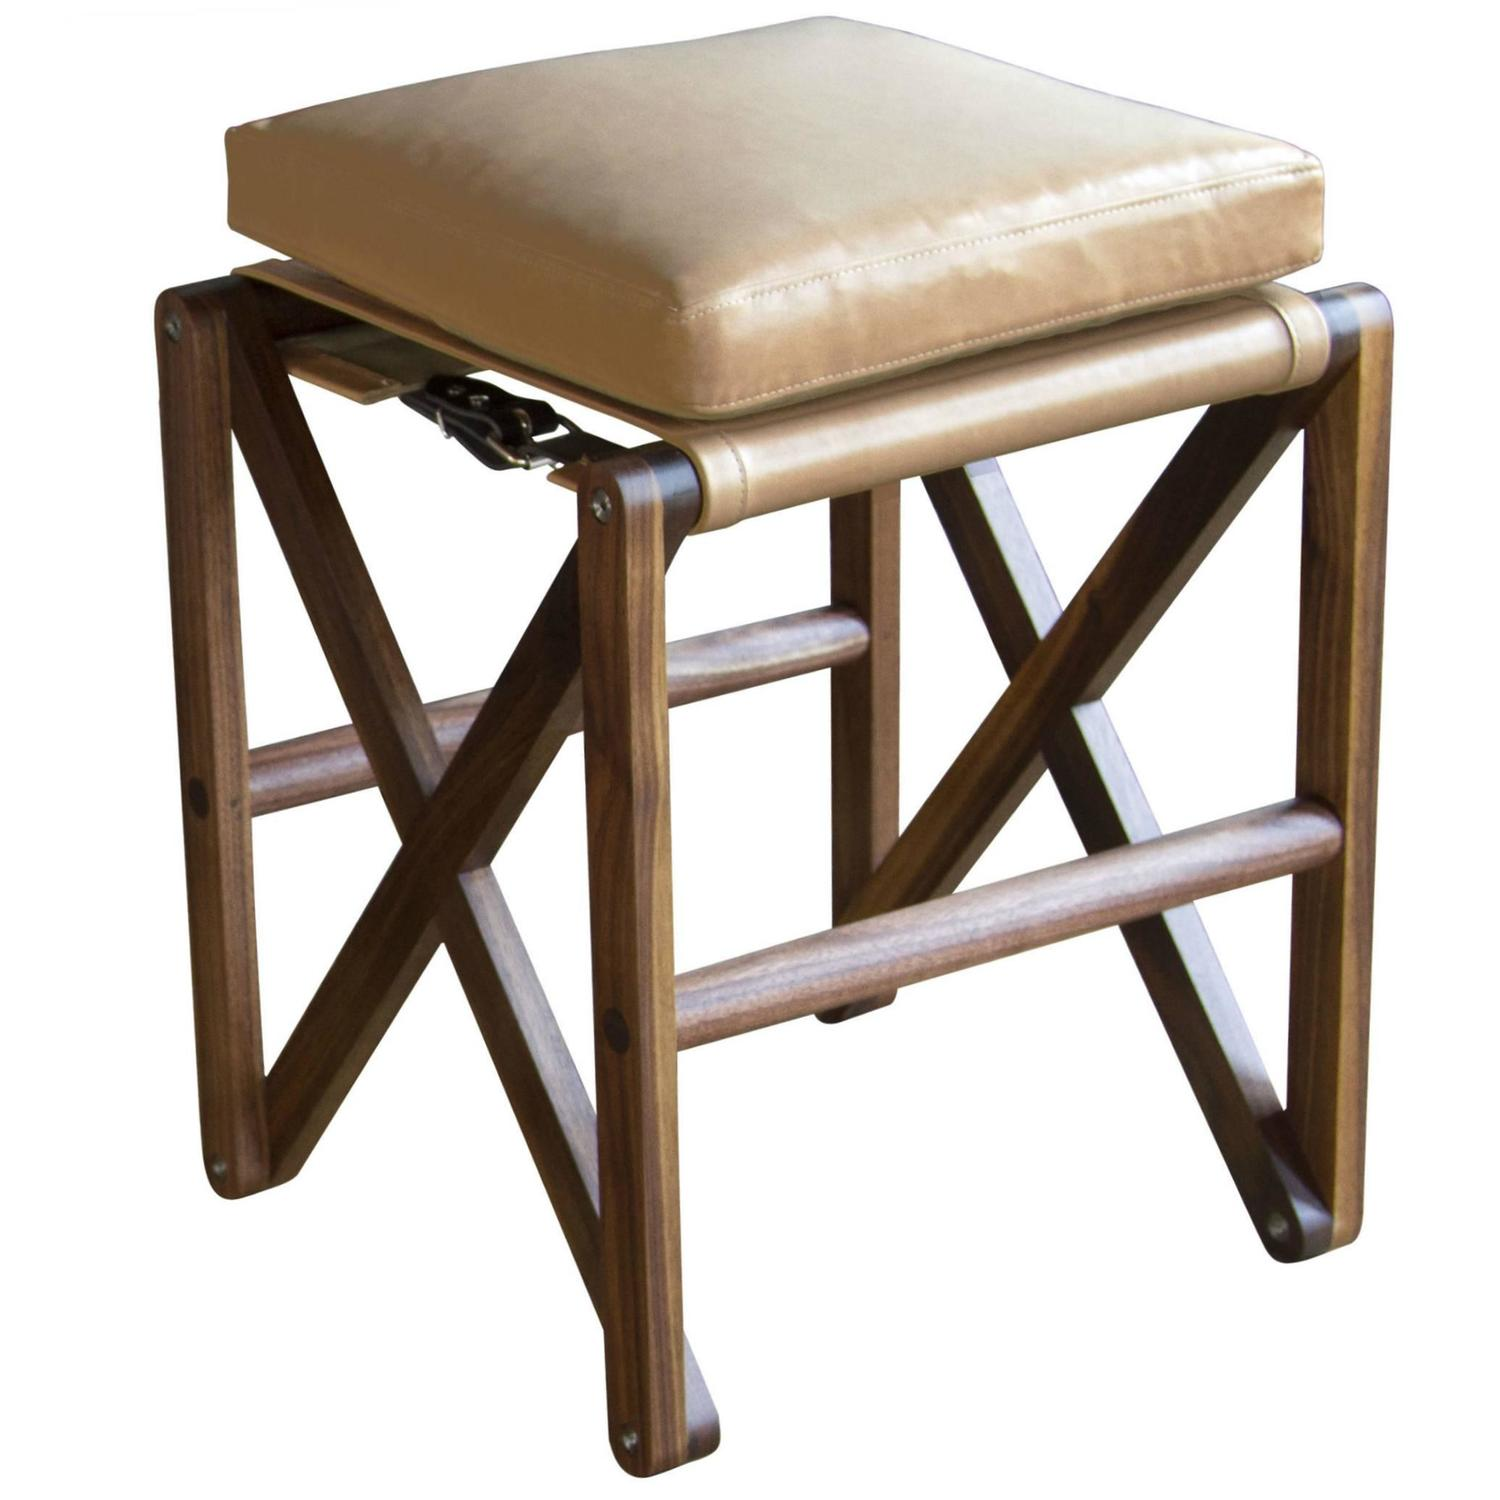 Maclaren Stool In Oiled Walnut With Leather Upholstery For